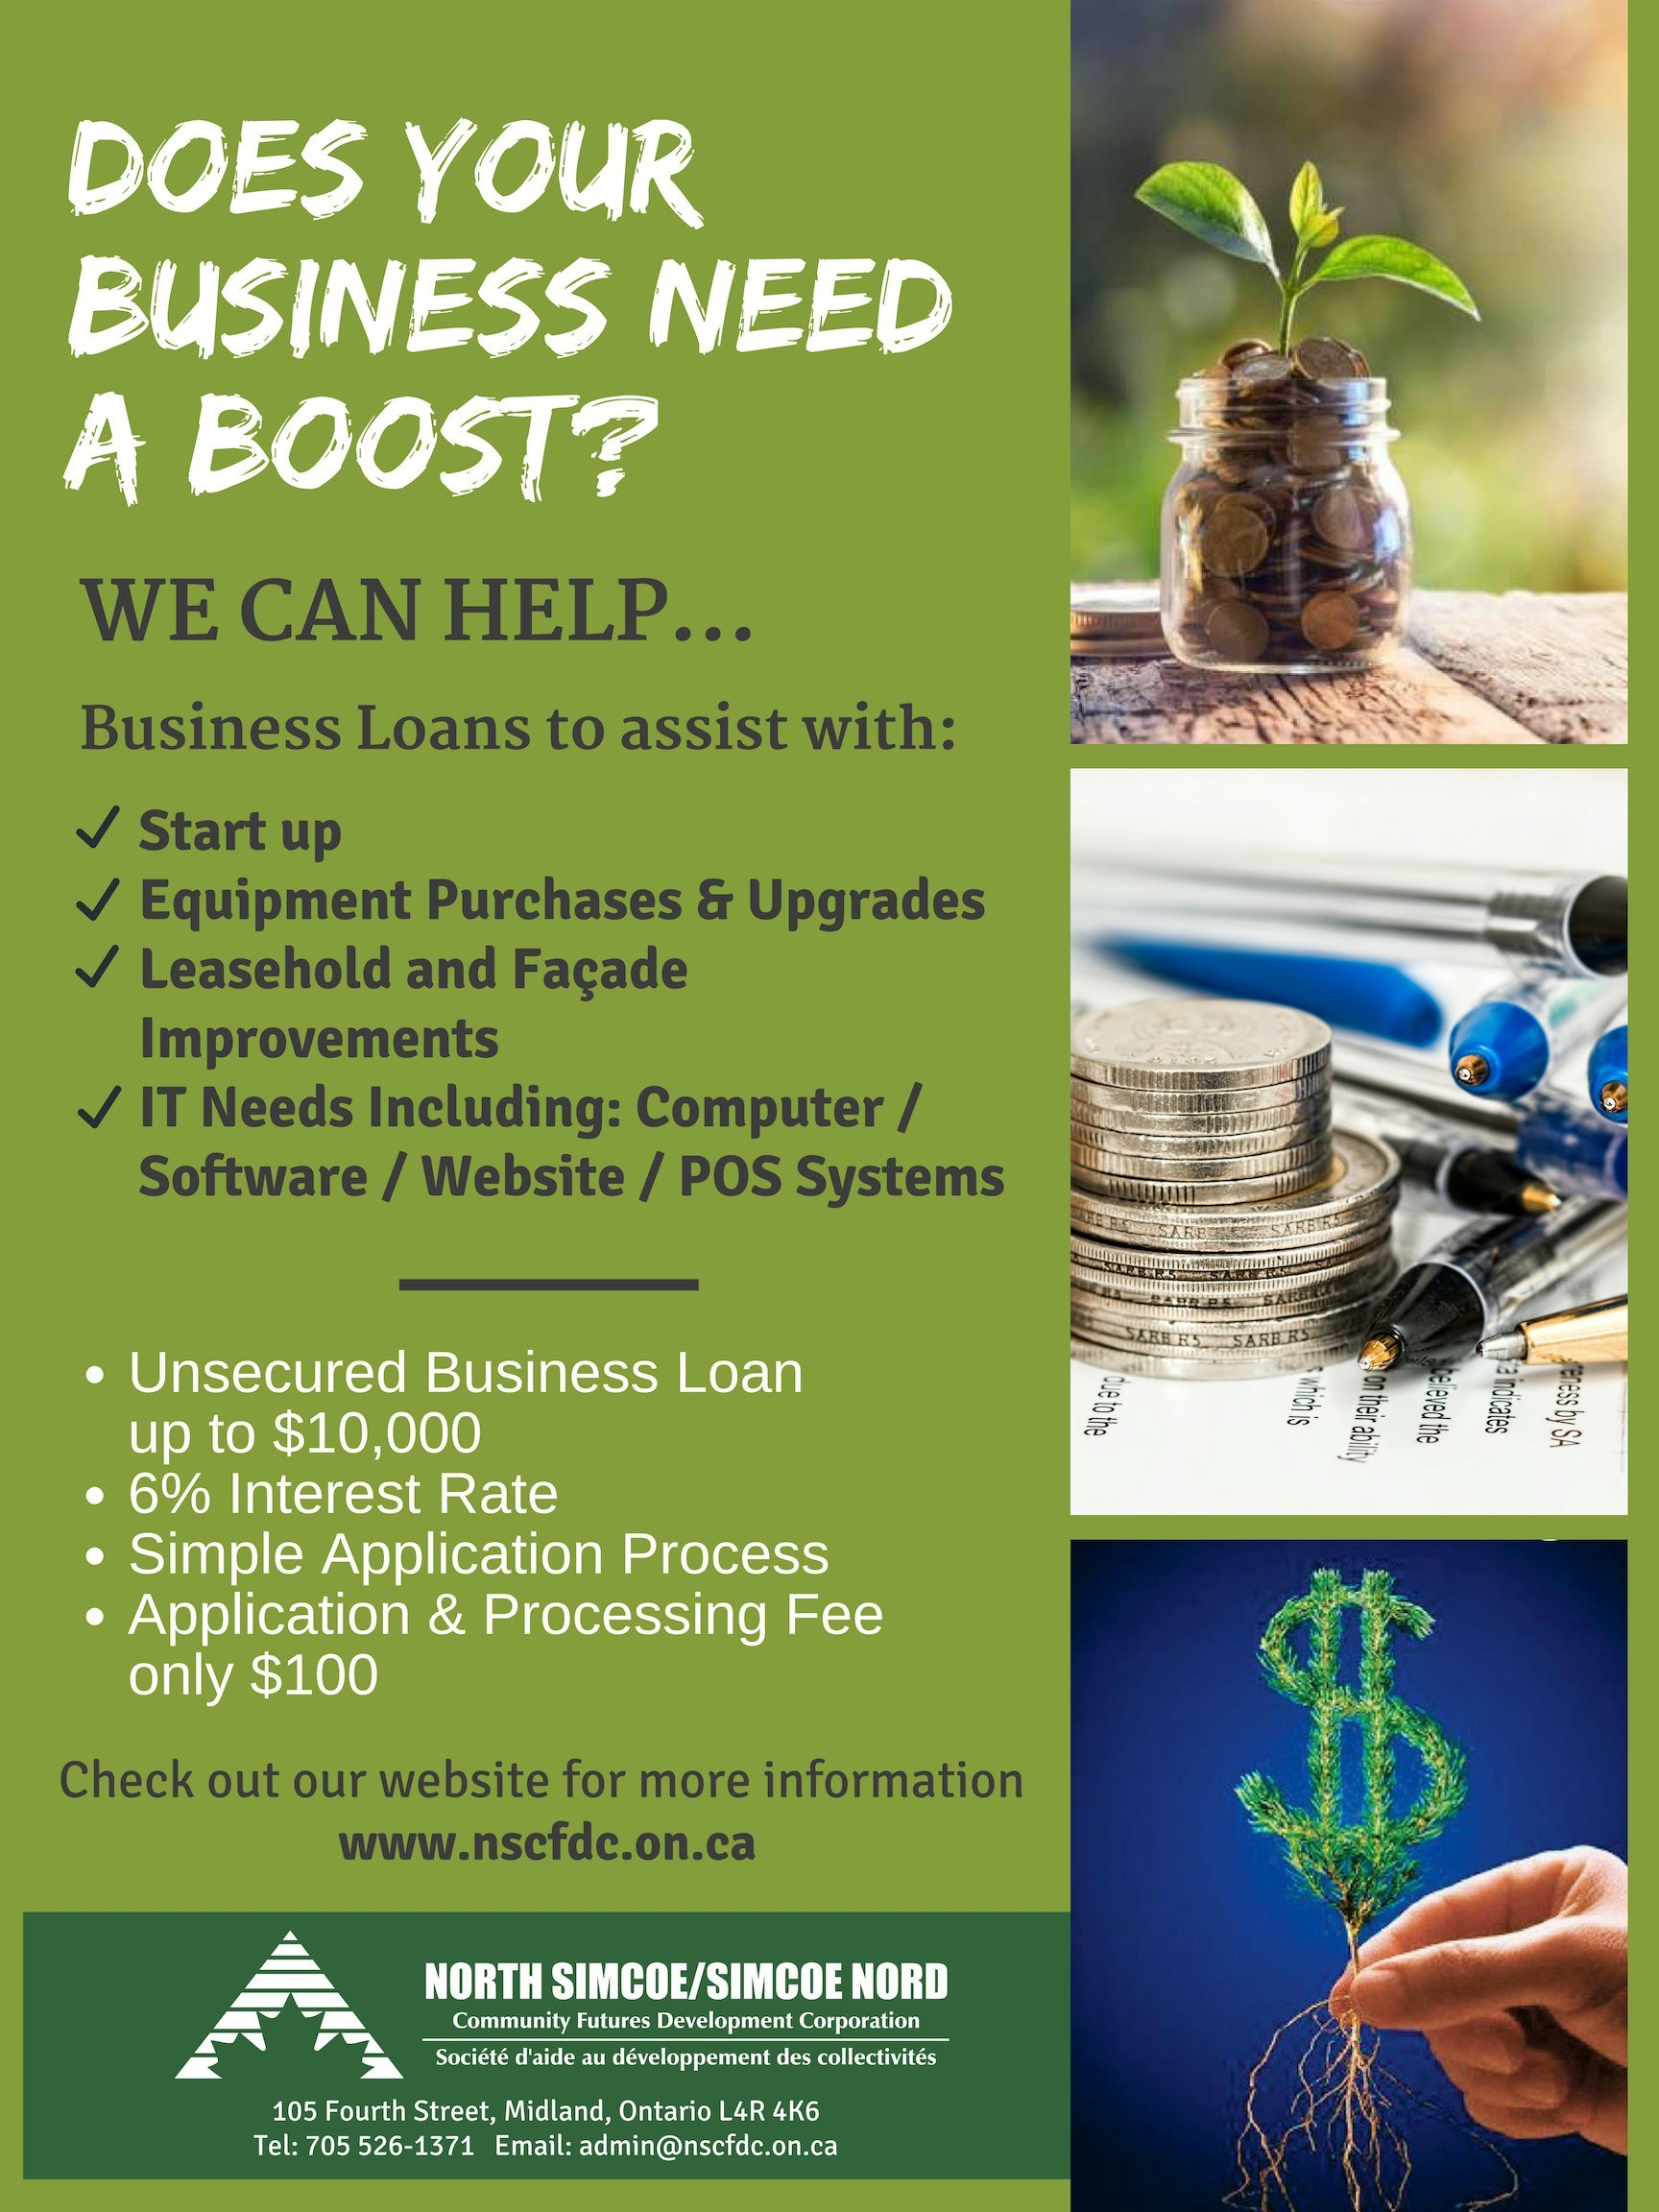 Does your business need a boost?